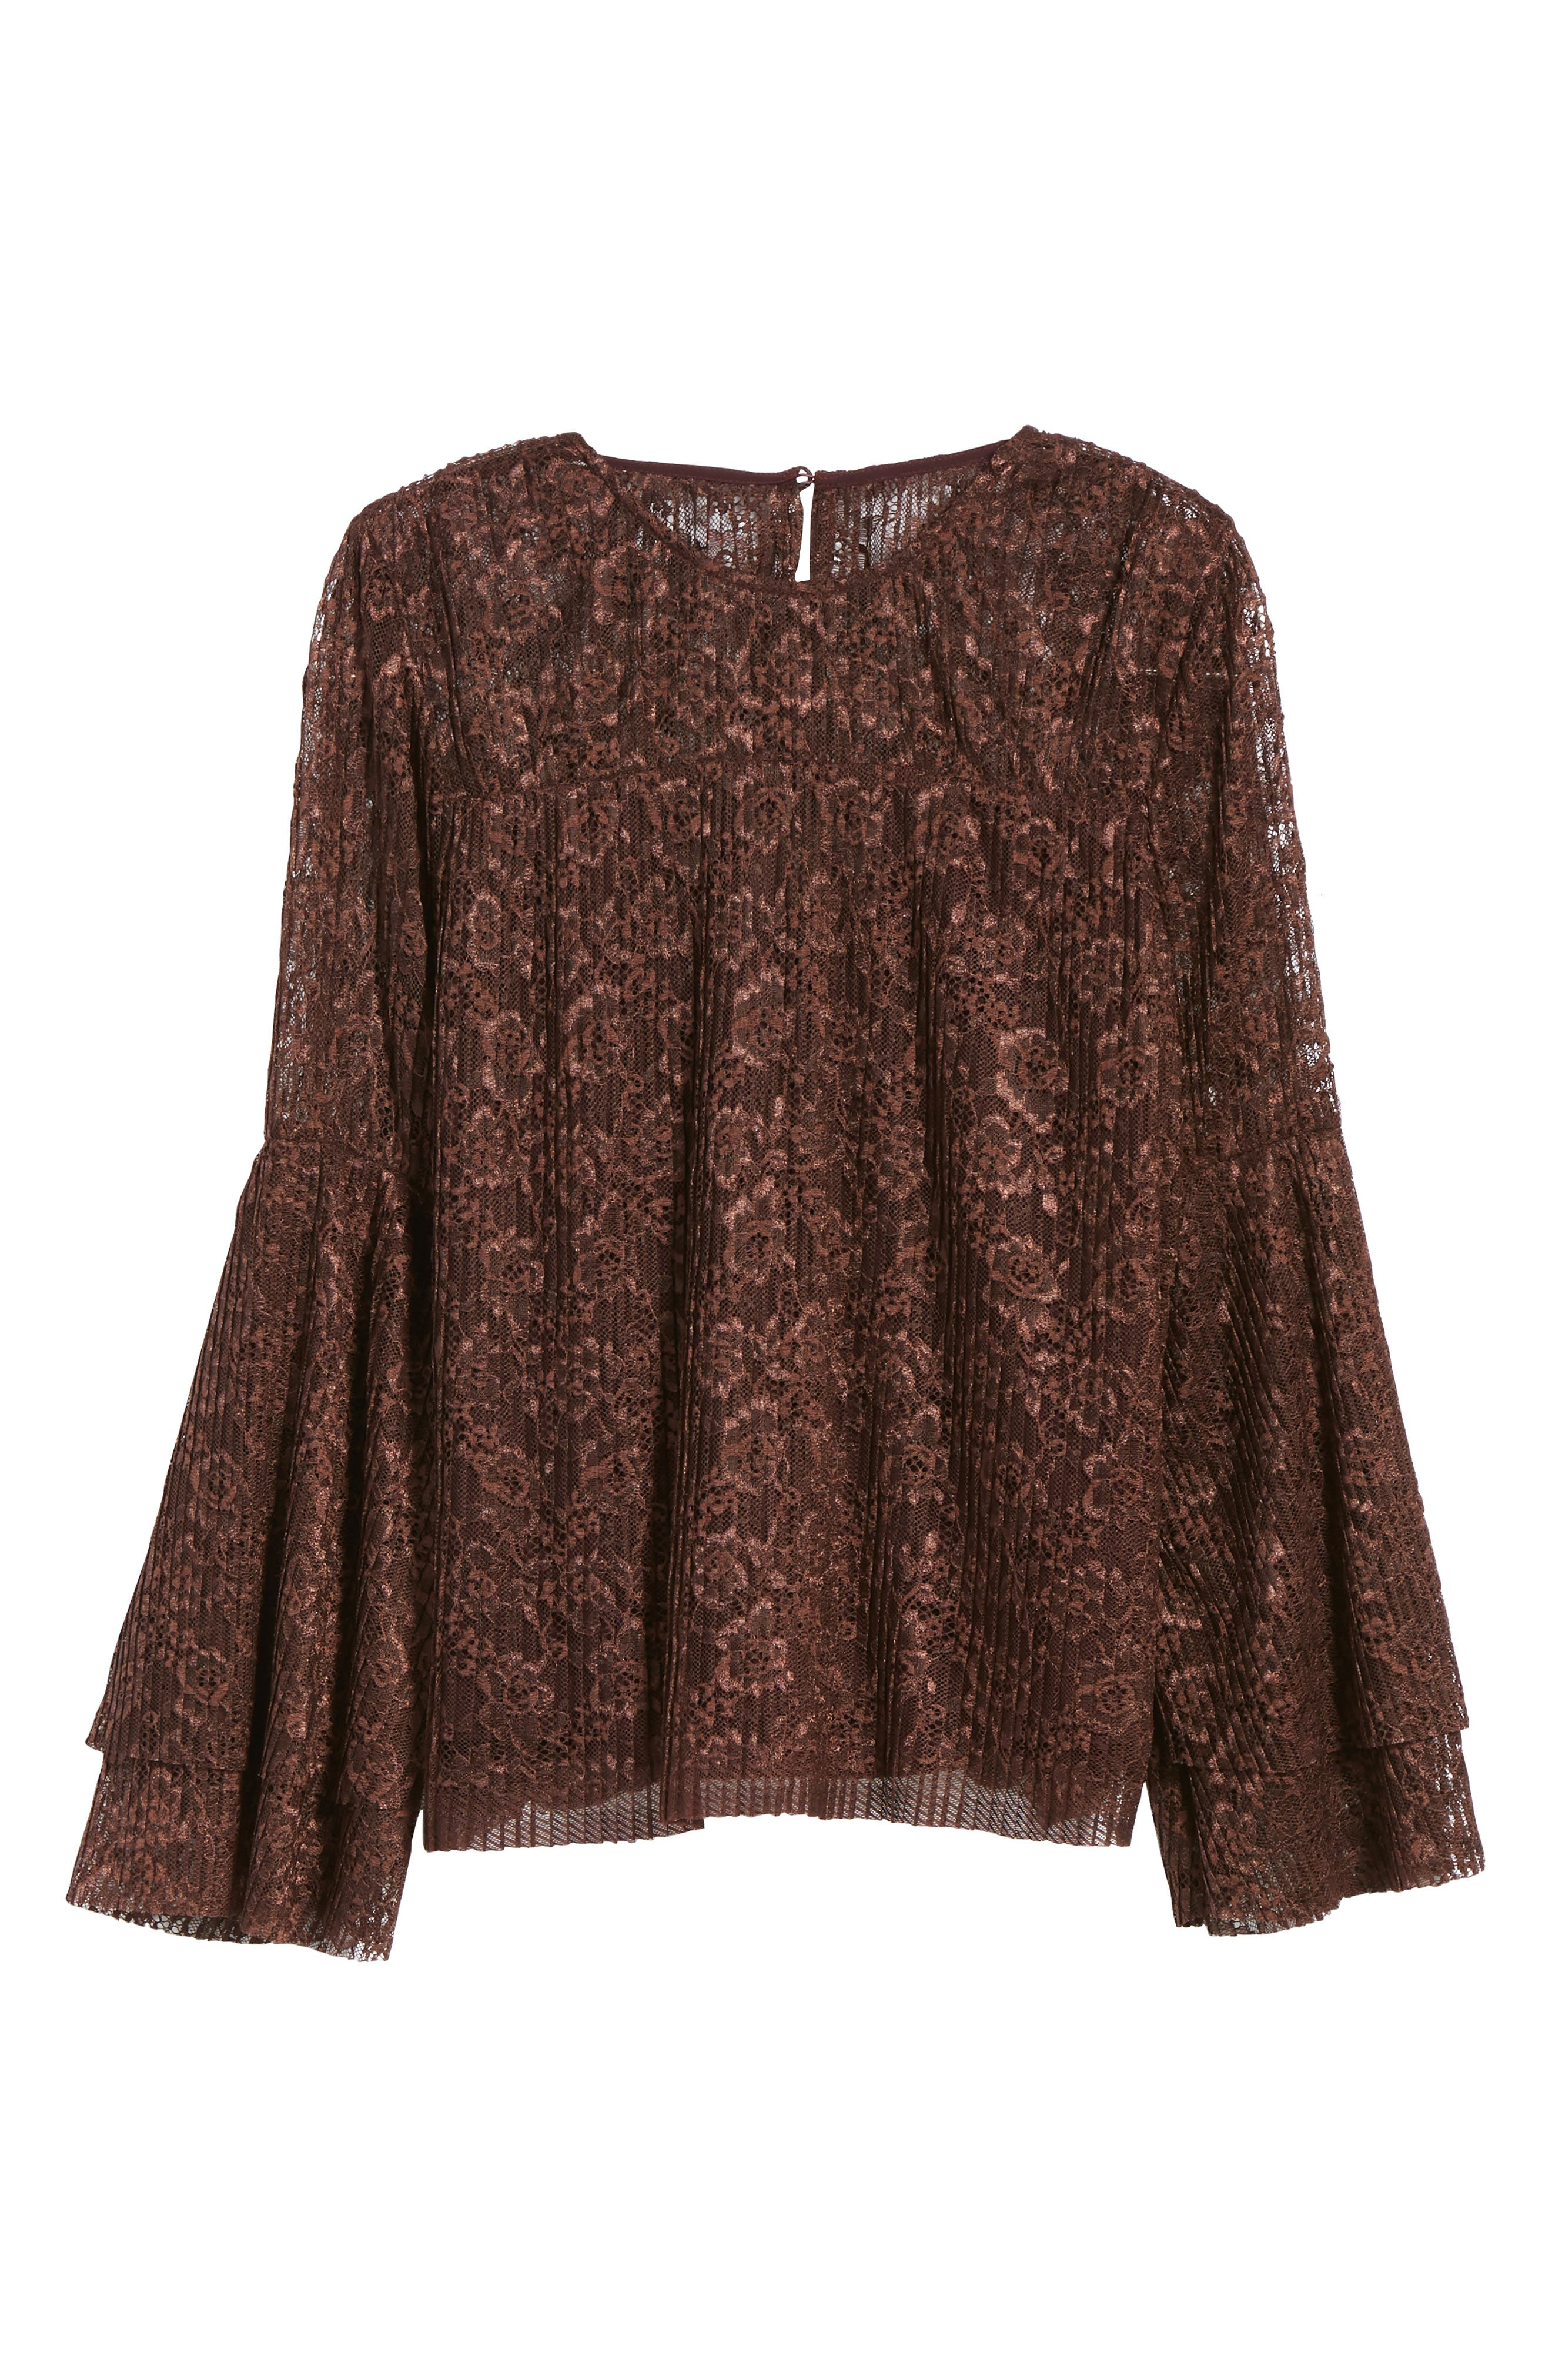 Lace Bell Sleeve Top,                             Alternate thumbnail 6, color,                             937